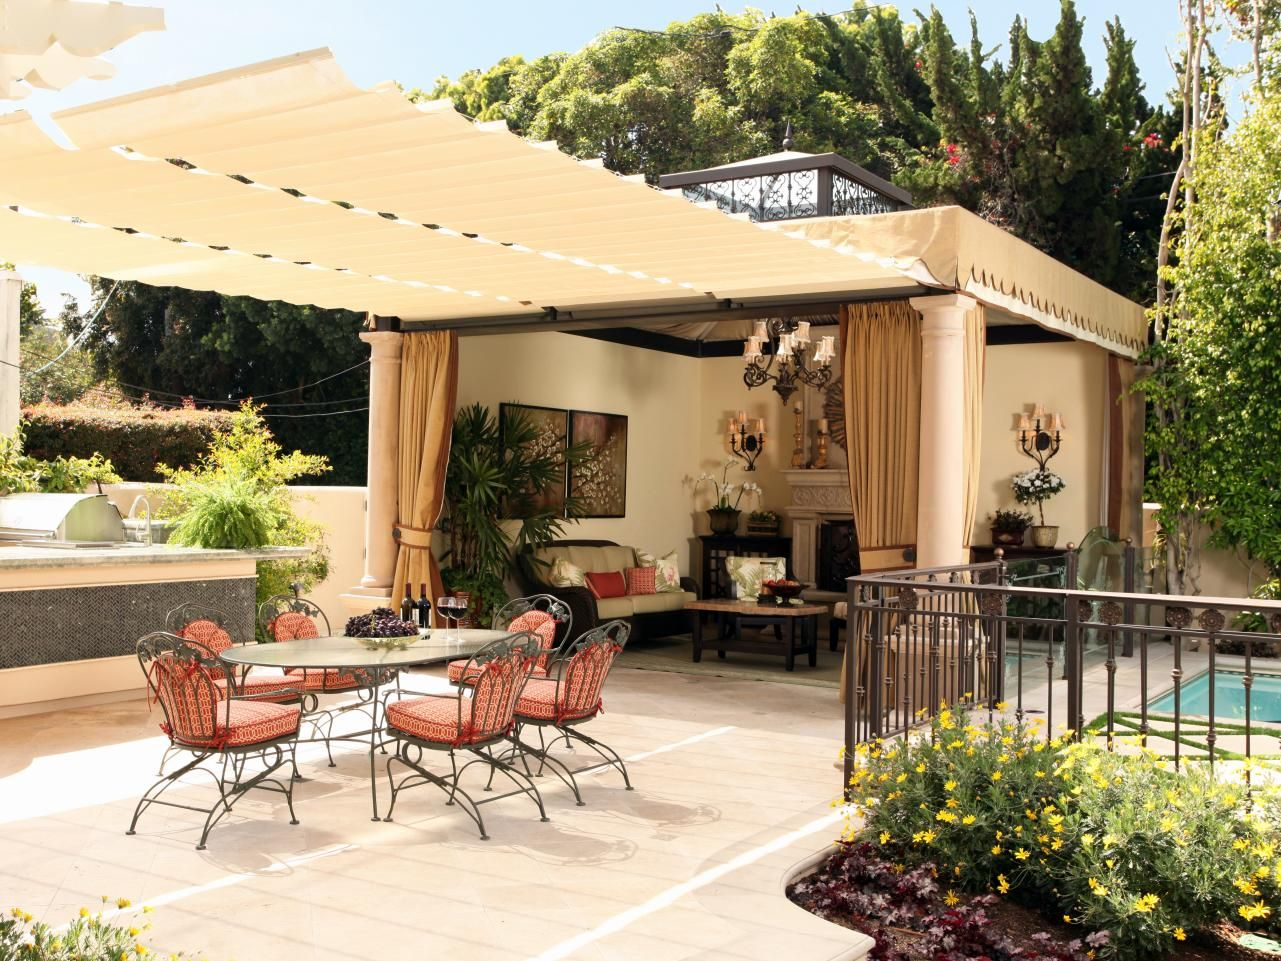 wonderful outdoor dining area design und dekoration ideen | pinterest